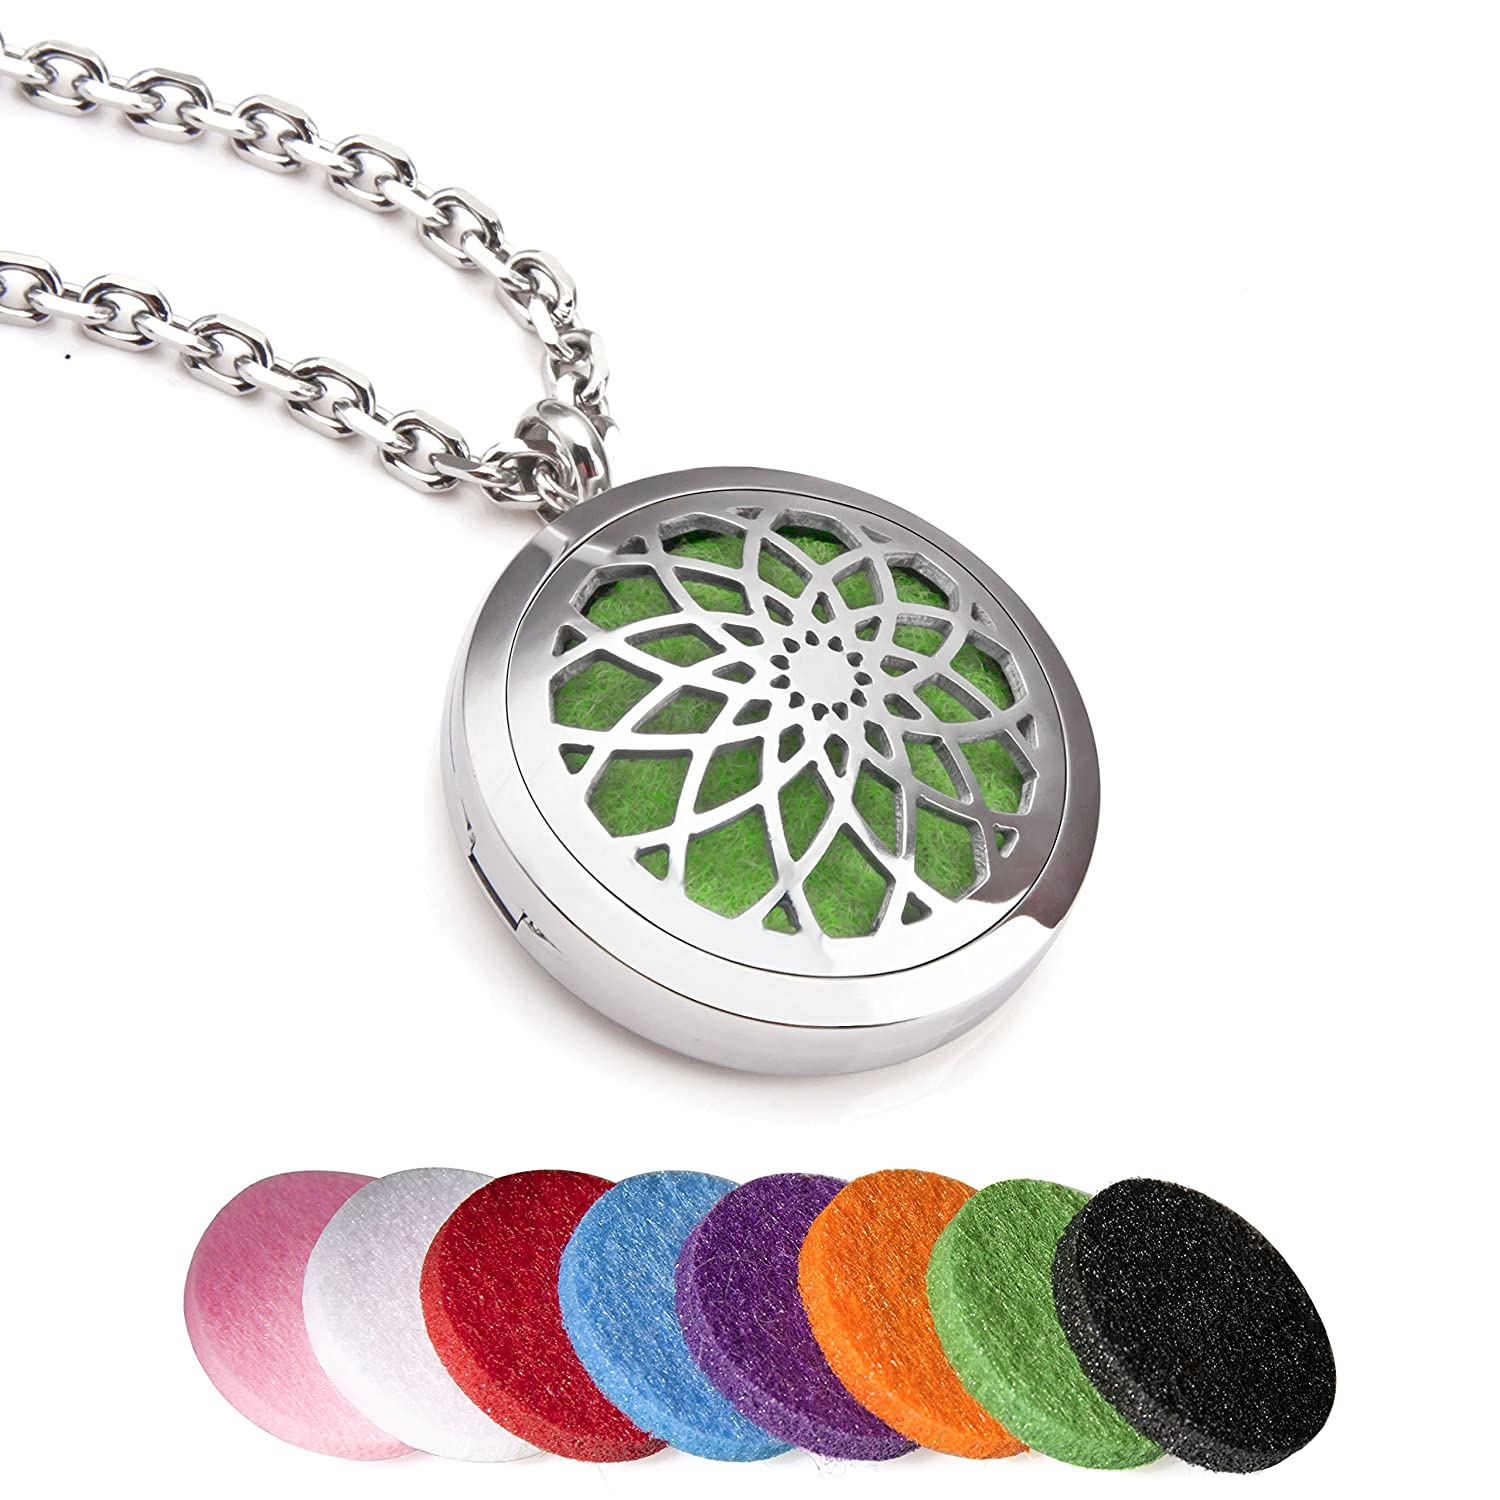 Everlead stainless steel convex round essential oils diffuser everlead stainless steel convex round essential oils diffuser magnetic locket carving aromatherapy pendant necklace amazon jewelry aloadofball Image collections